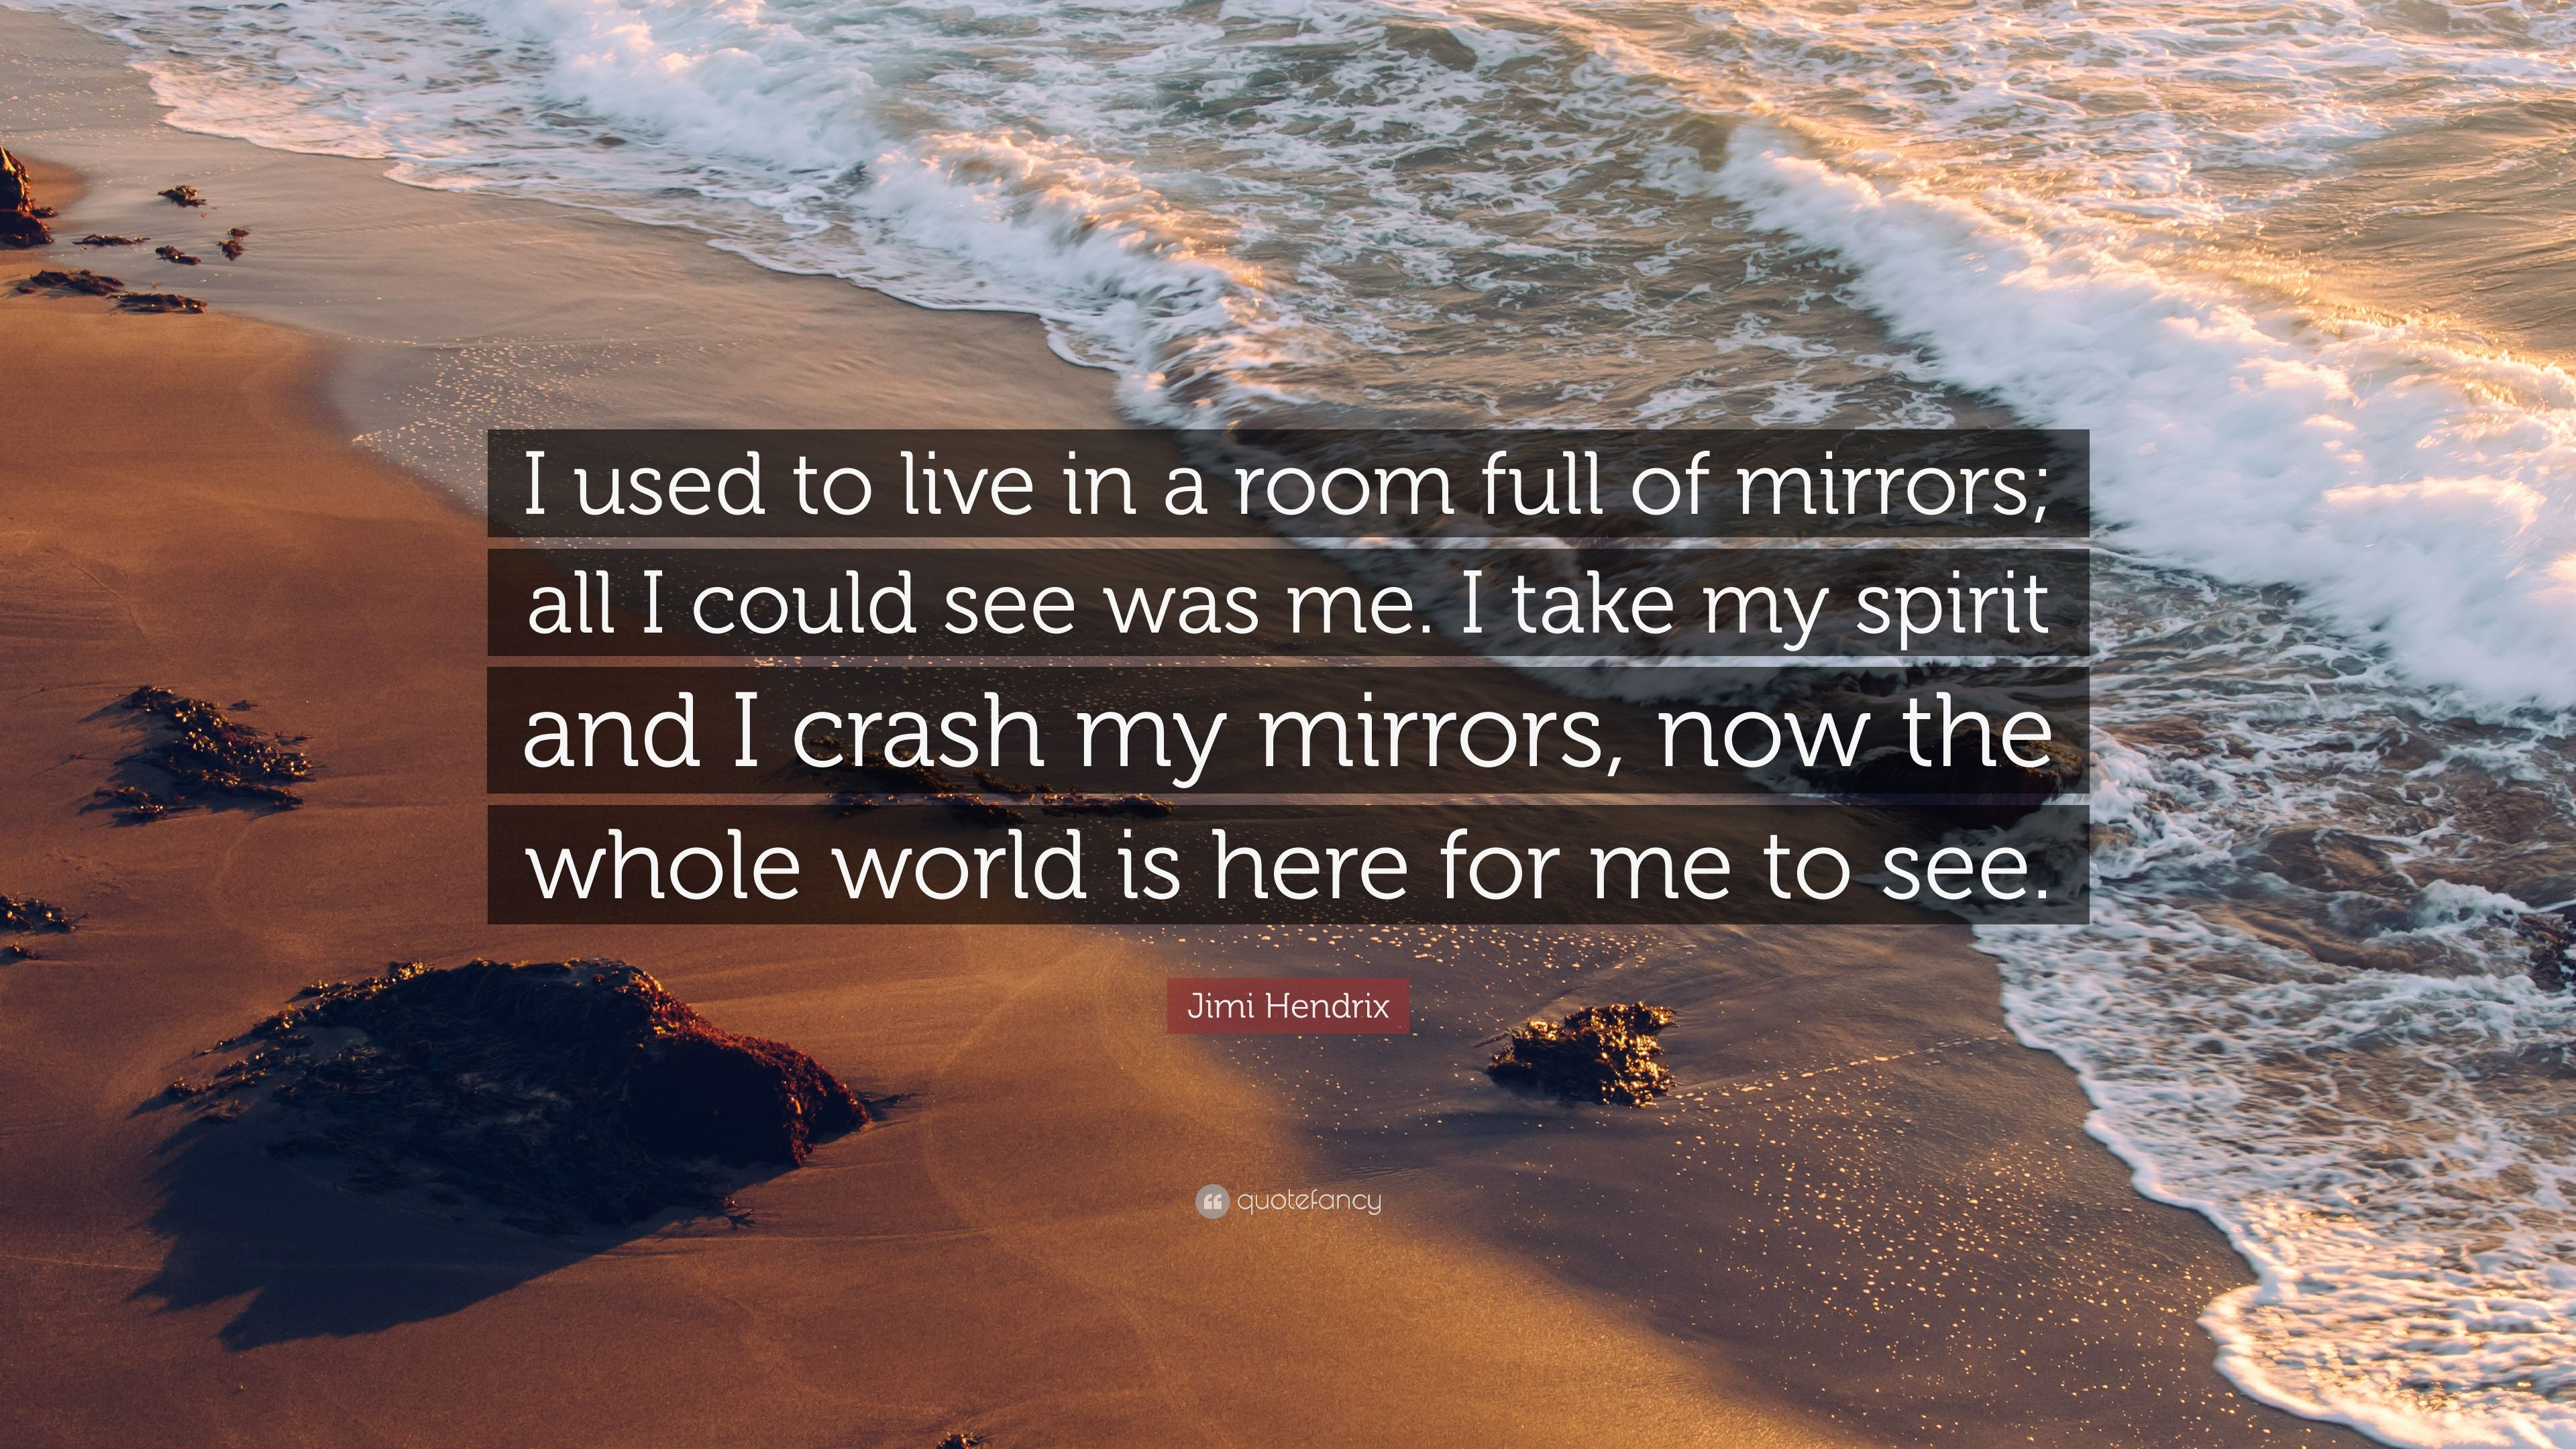 jimi hendrix quote i used to live in a room full of mirrors all i could see was me i take my